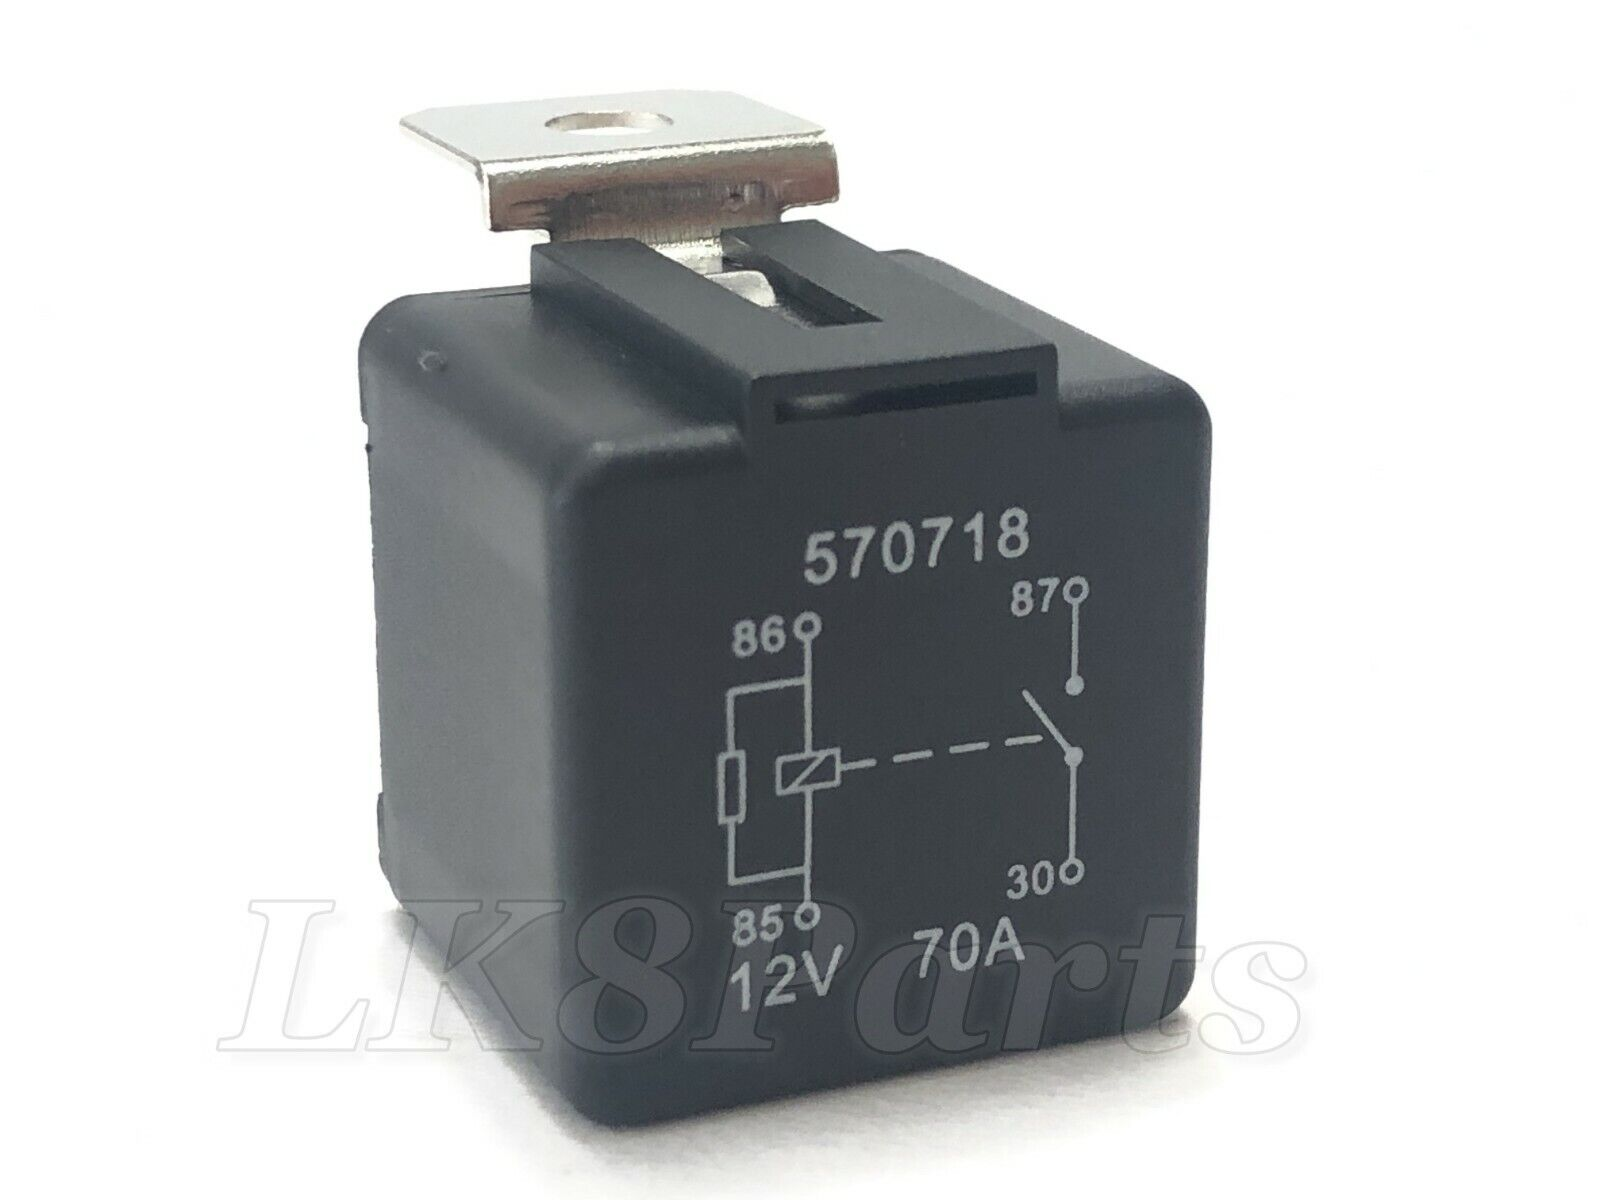 LAND ROVER RANGE ROVER 2003-2009 FULL SIZE AIR SUSPENSION COMPRESSOR RELAY YWB500220